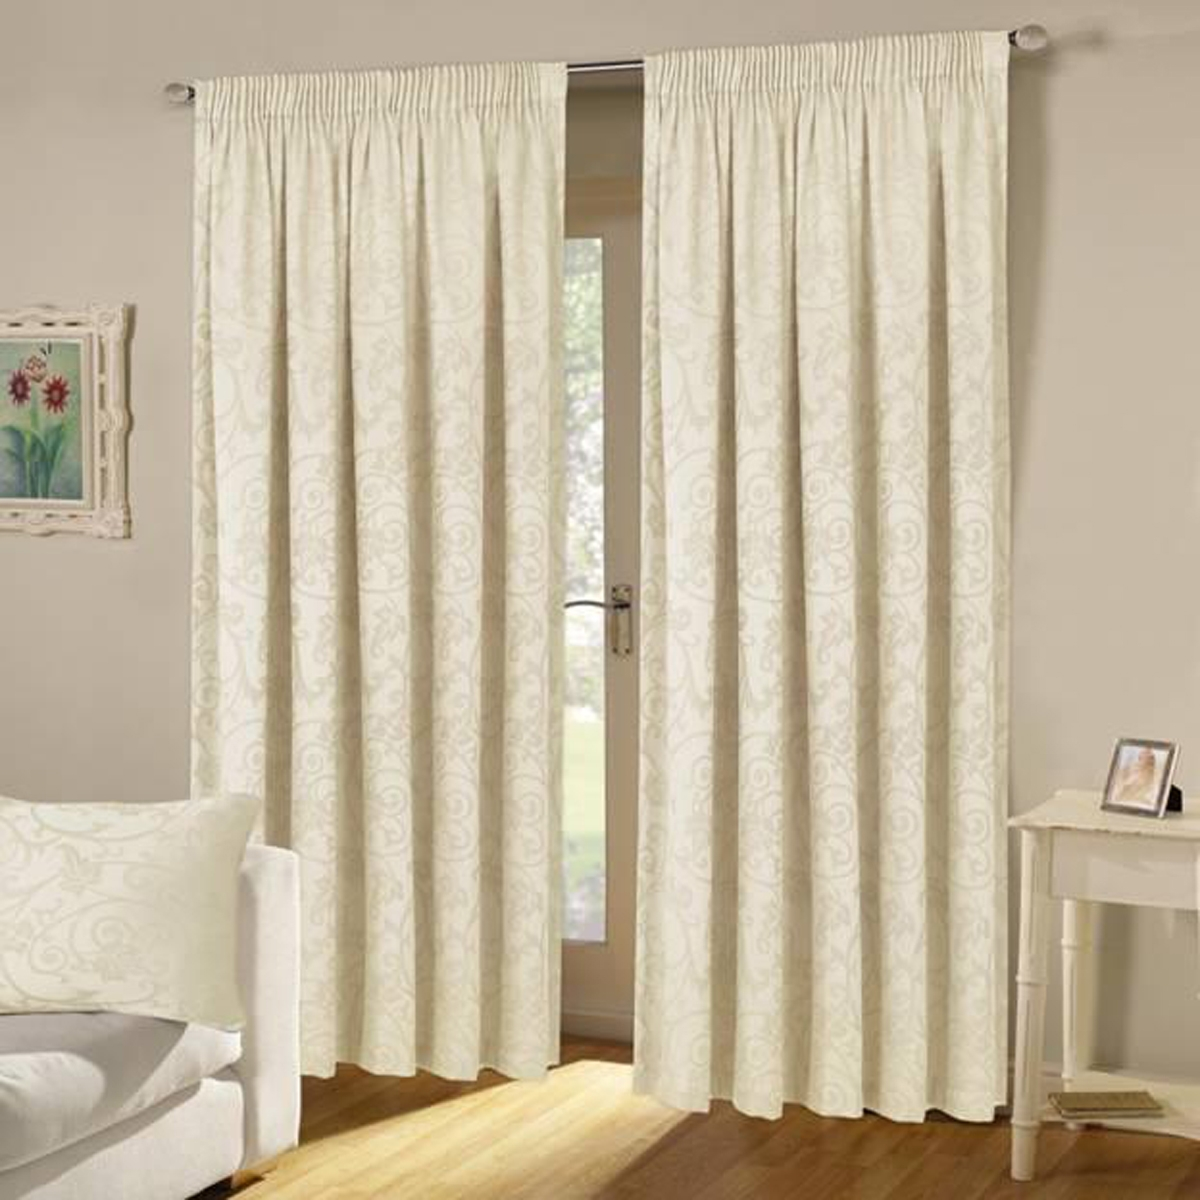 Cream Curtains Winda 7 Furniture With Lined Cream Curtains (View 4 of 15)